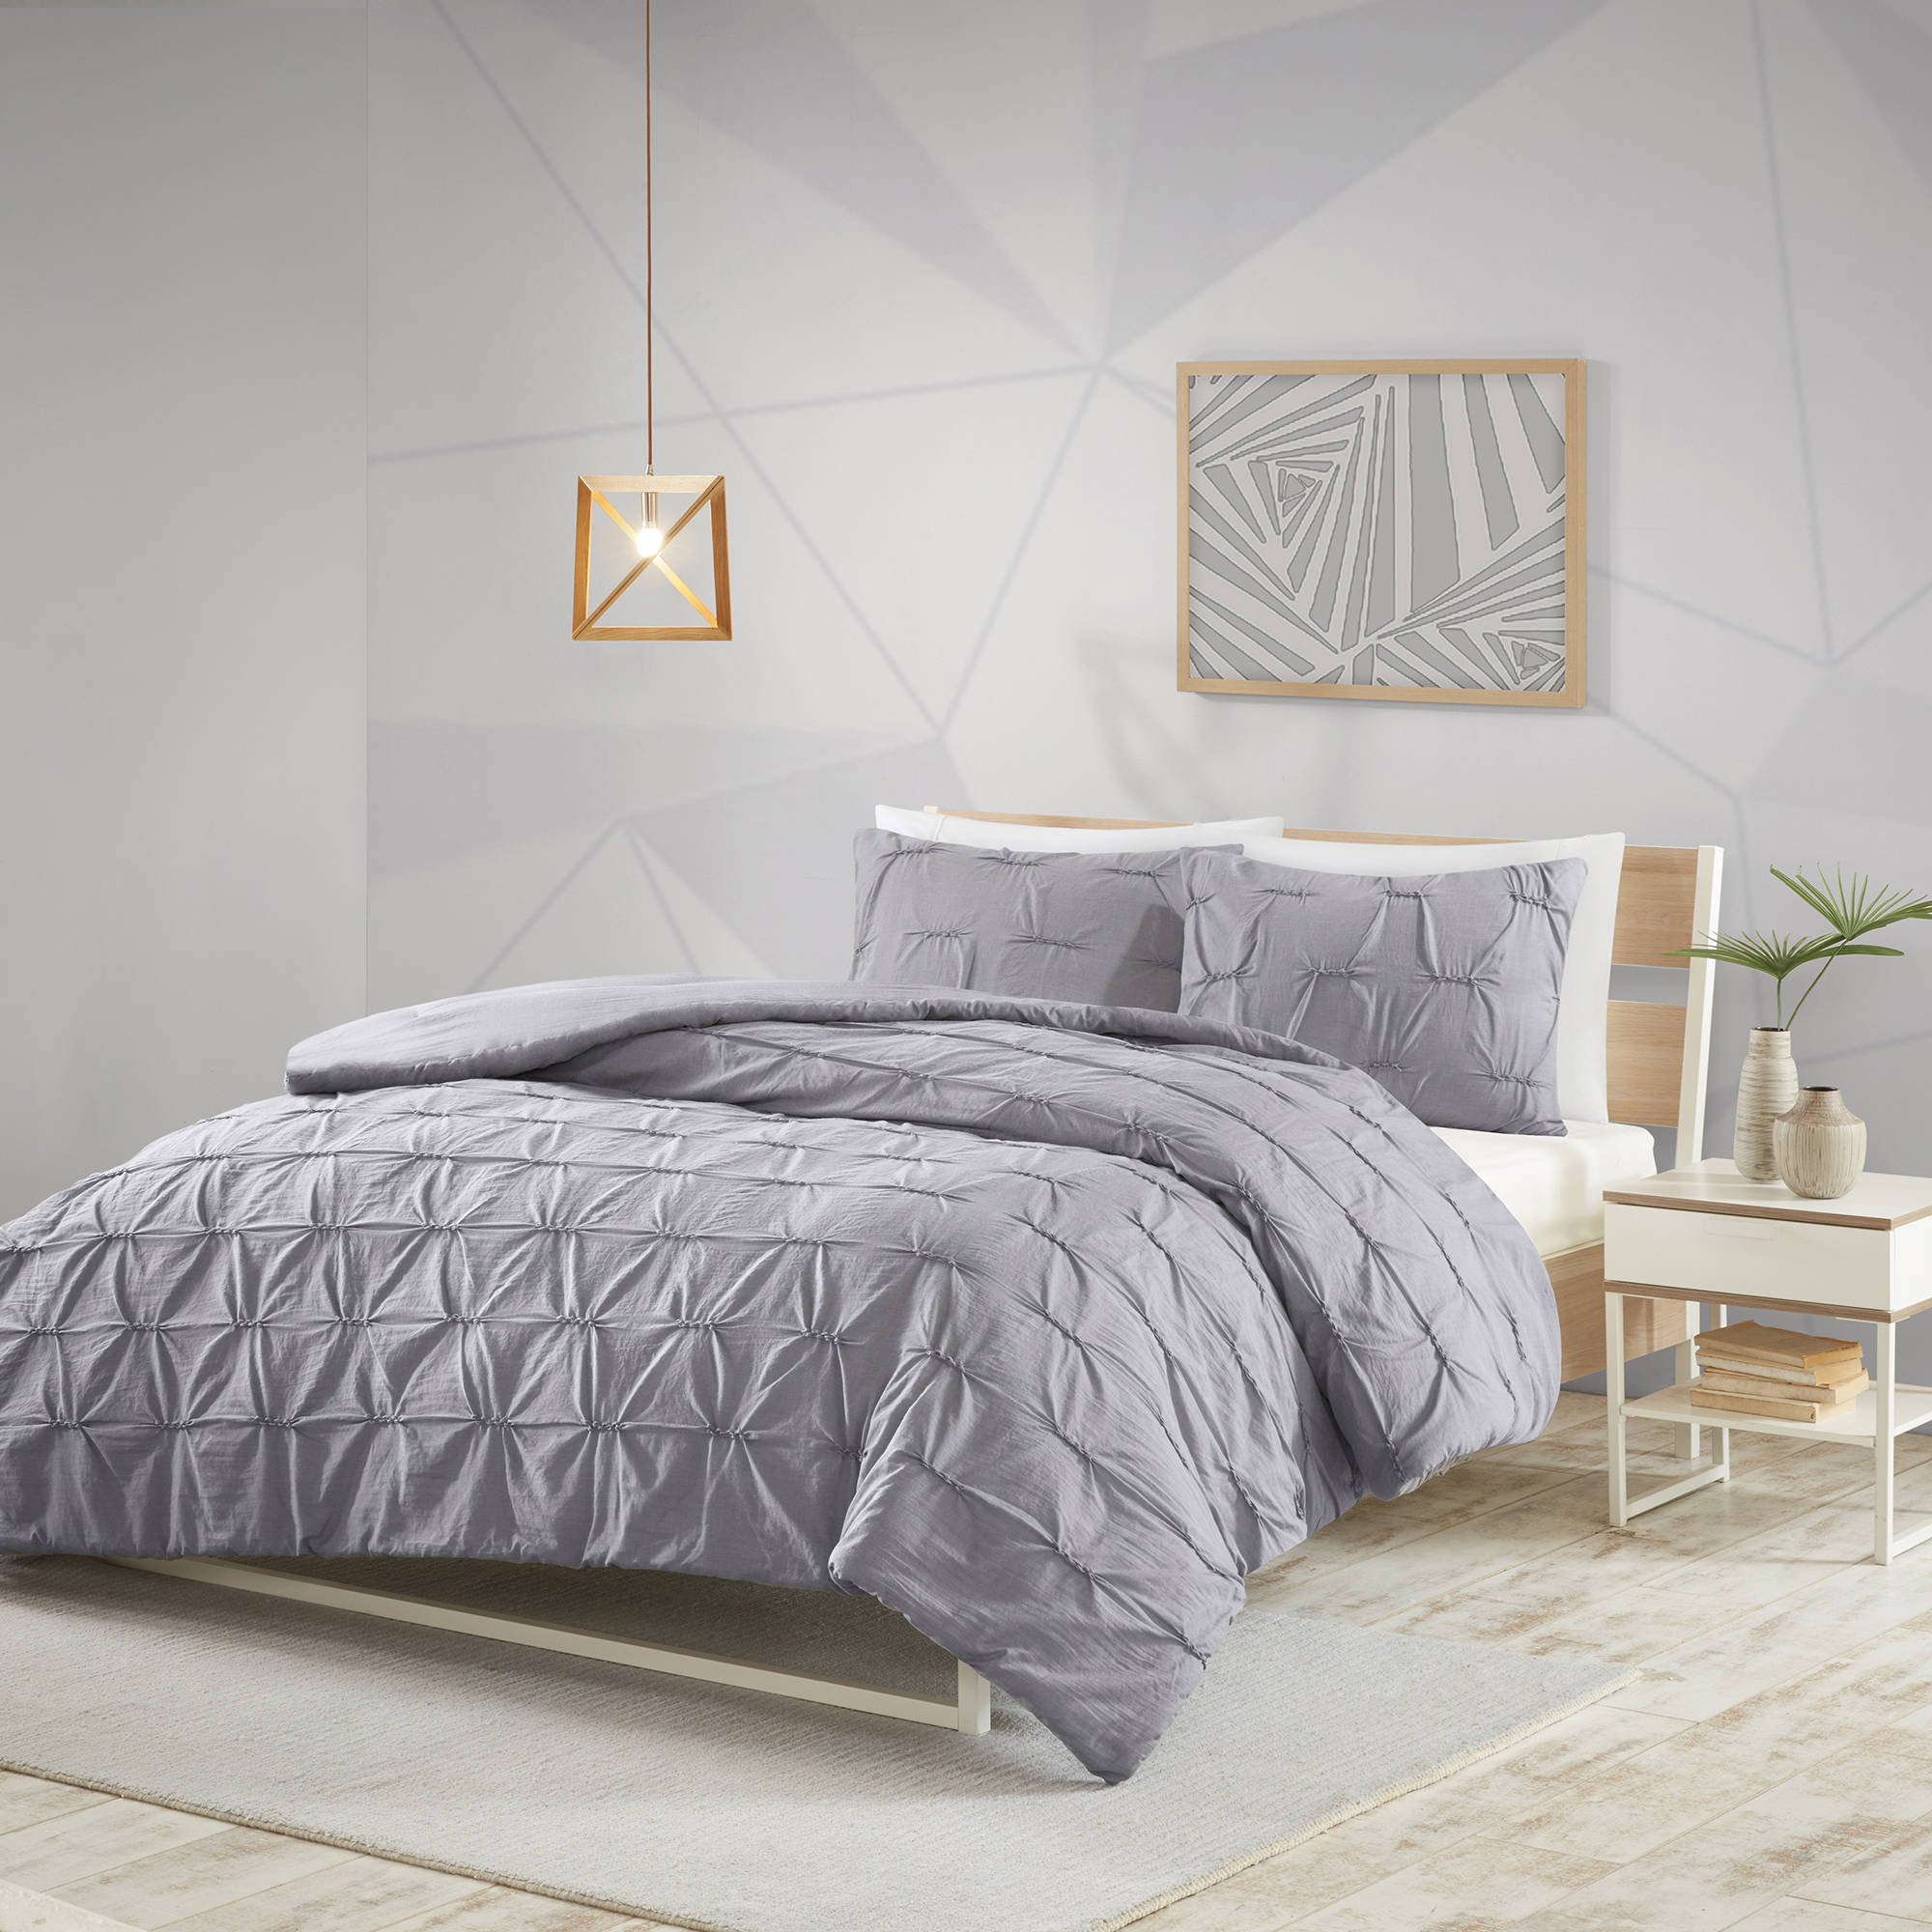 Better Homes and Gardens Embroidered Diamond 3-Piece Comforter Set